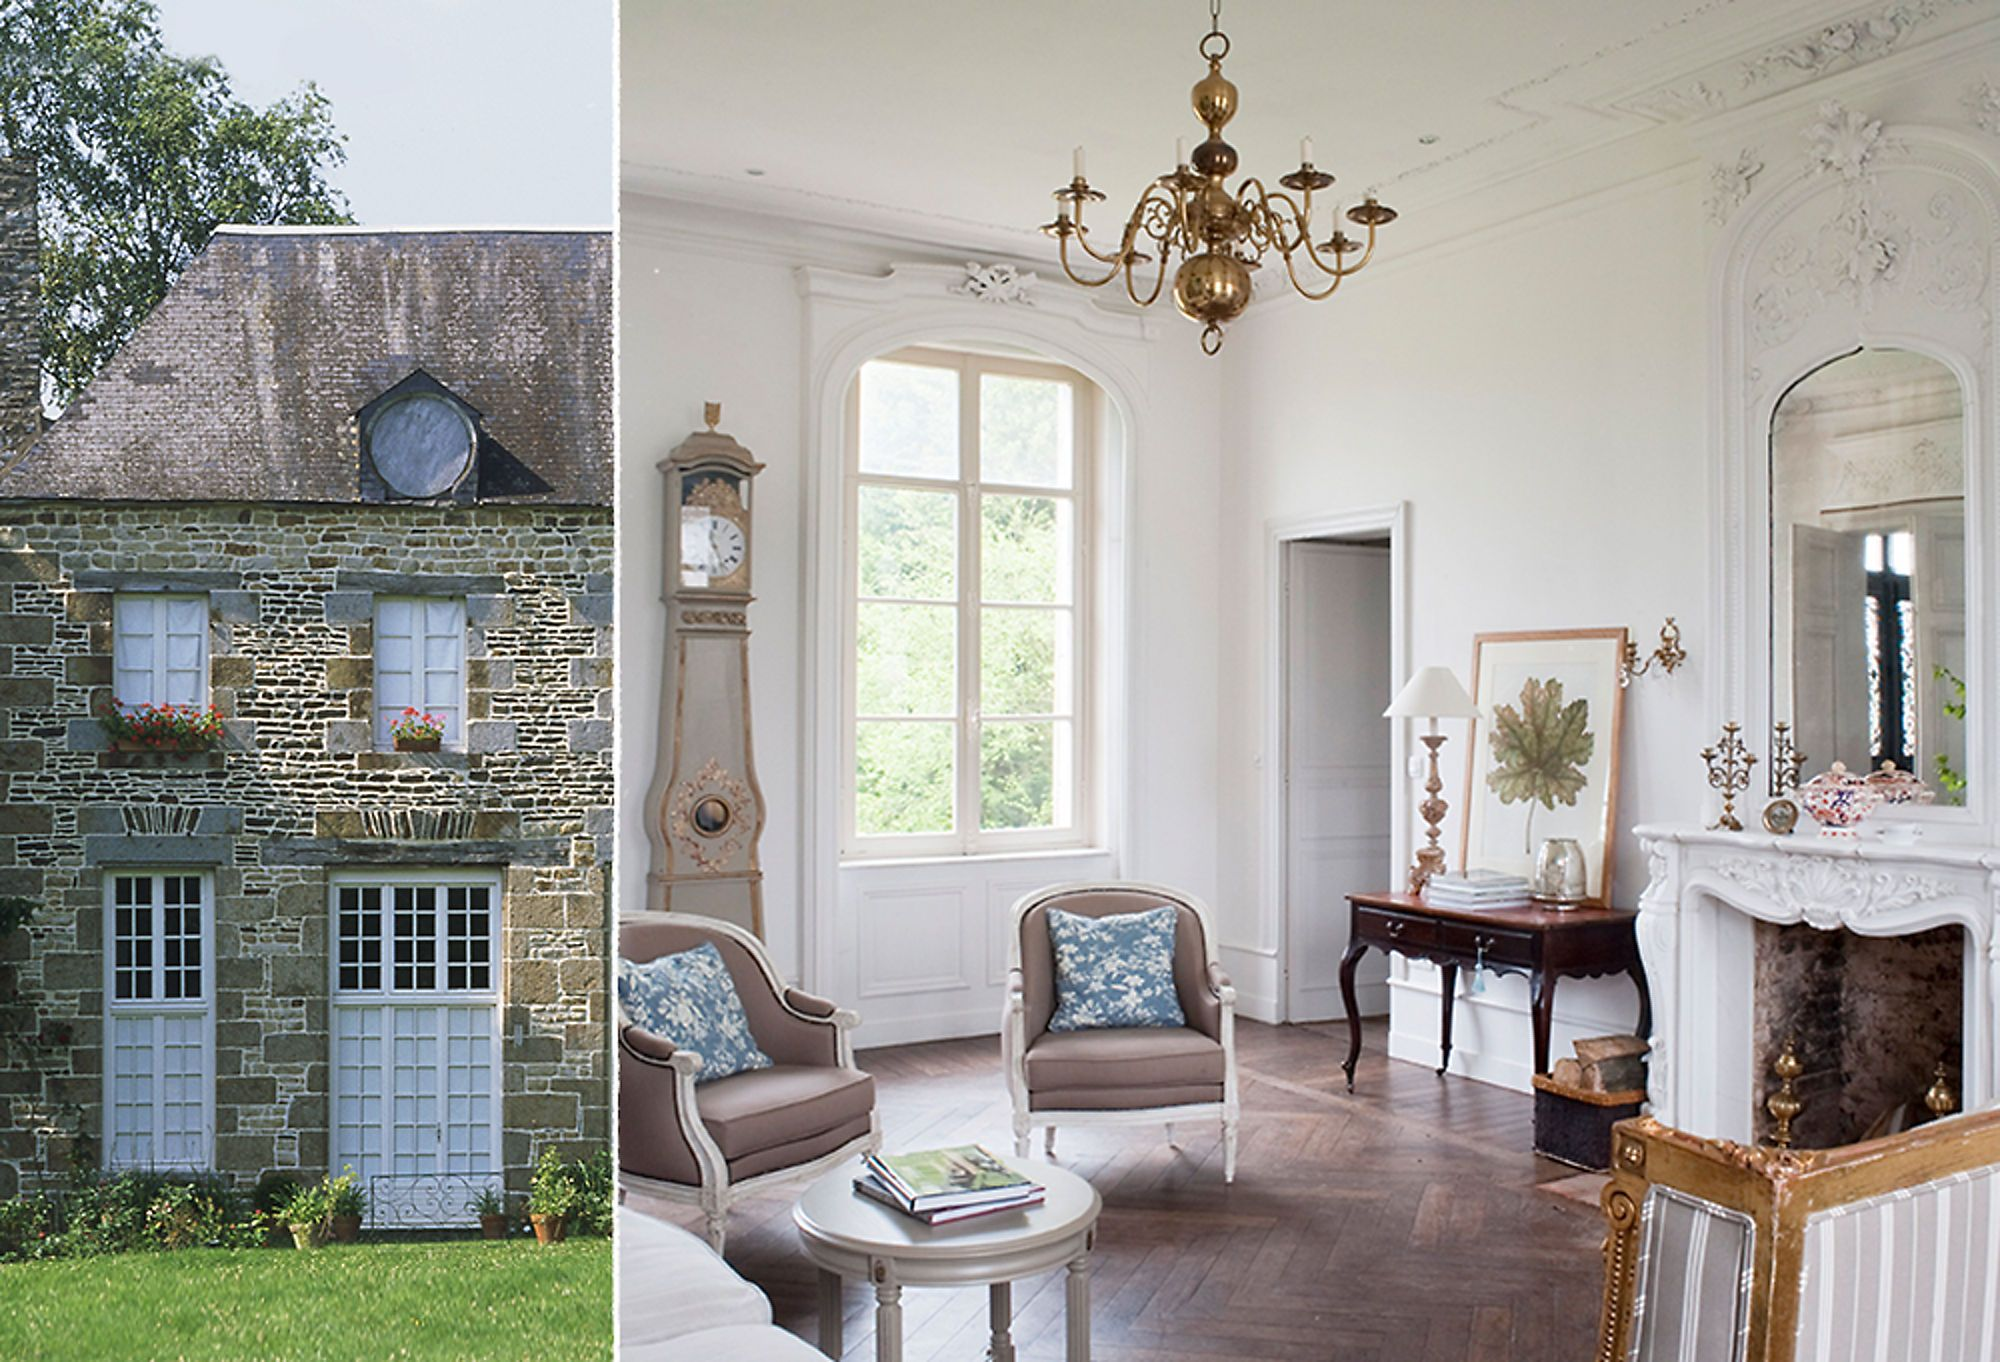 Inspired By Brittany, France Charming & Elegant Breton Style